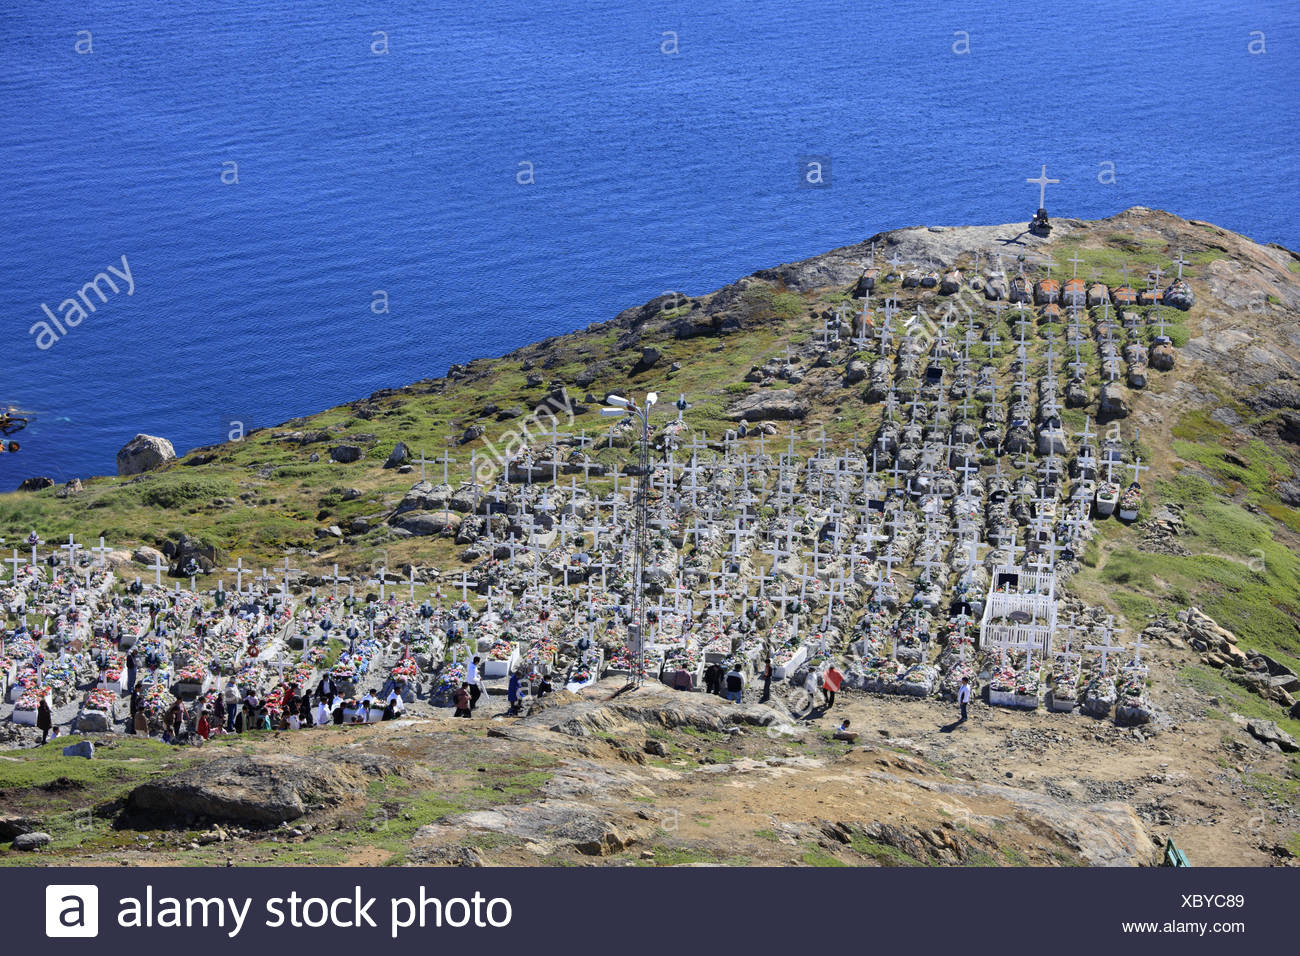 Greenland, Upernavik, bile coast, cemetery, view, sea, North-Western Greenland, coast, coastal scenery, water, the Arctic, tombs, crosses, faith, religion, Christianity, death, hope, grief, person, relatives, visitors, - Stock Image